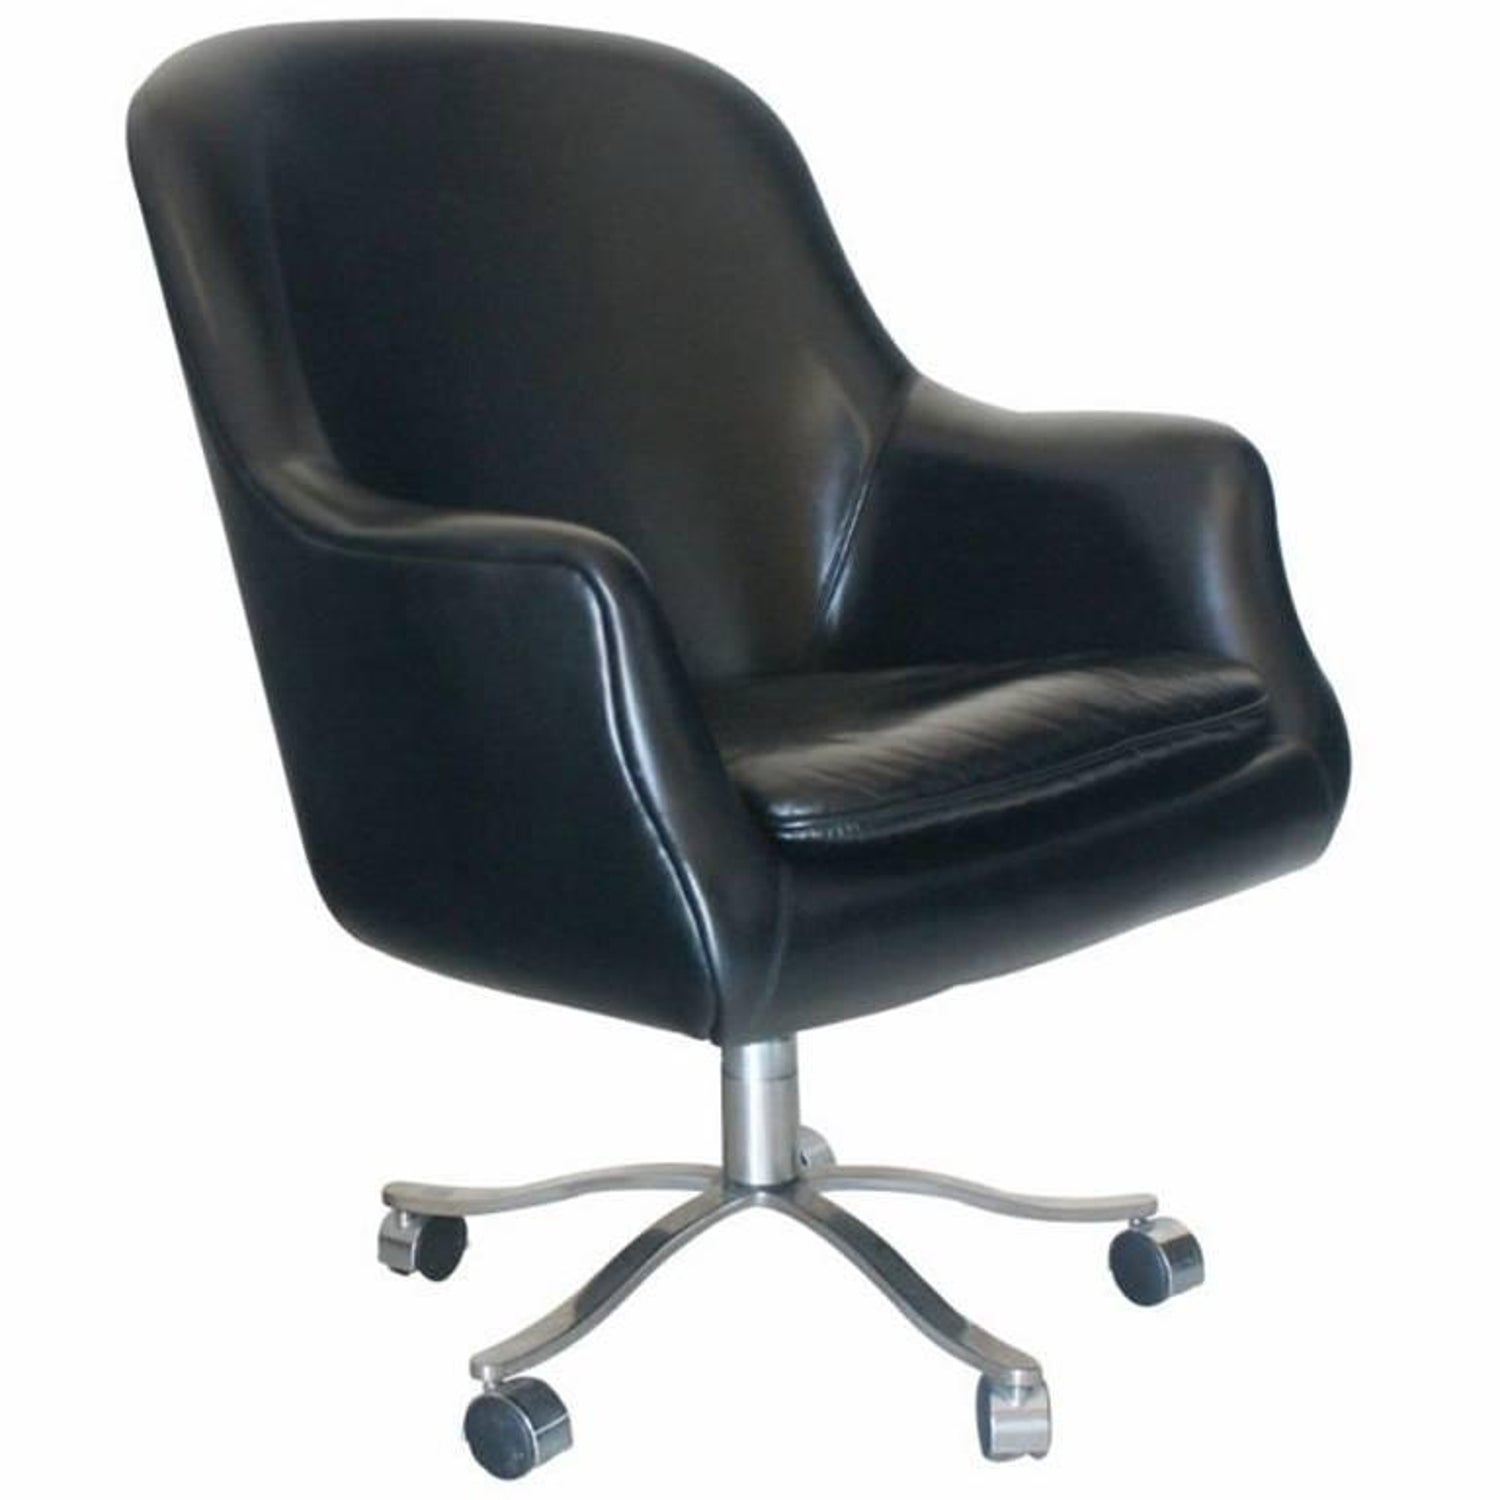 Nicos Zographos Black Leather Bucket Chair at 1stdibs